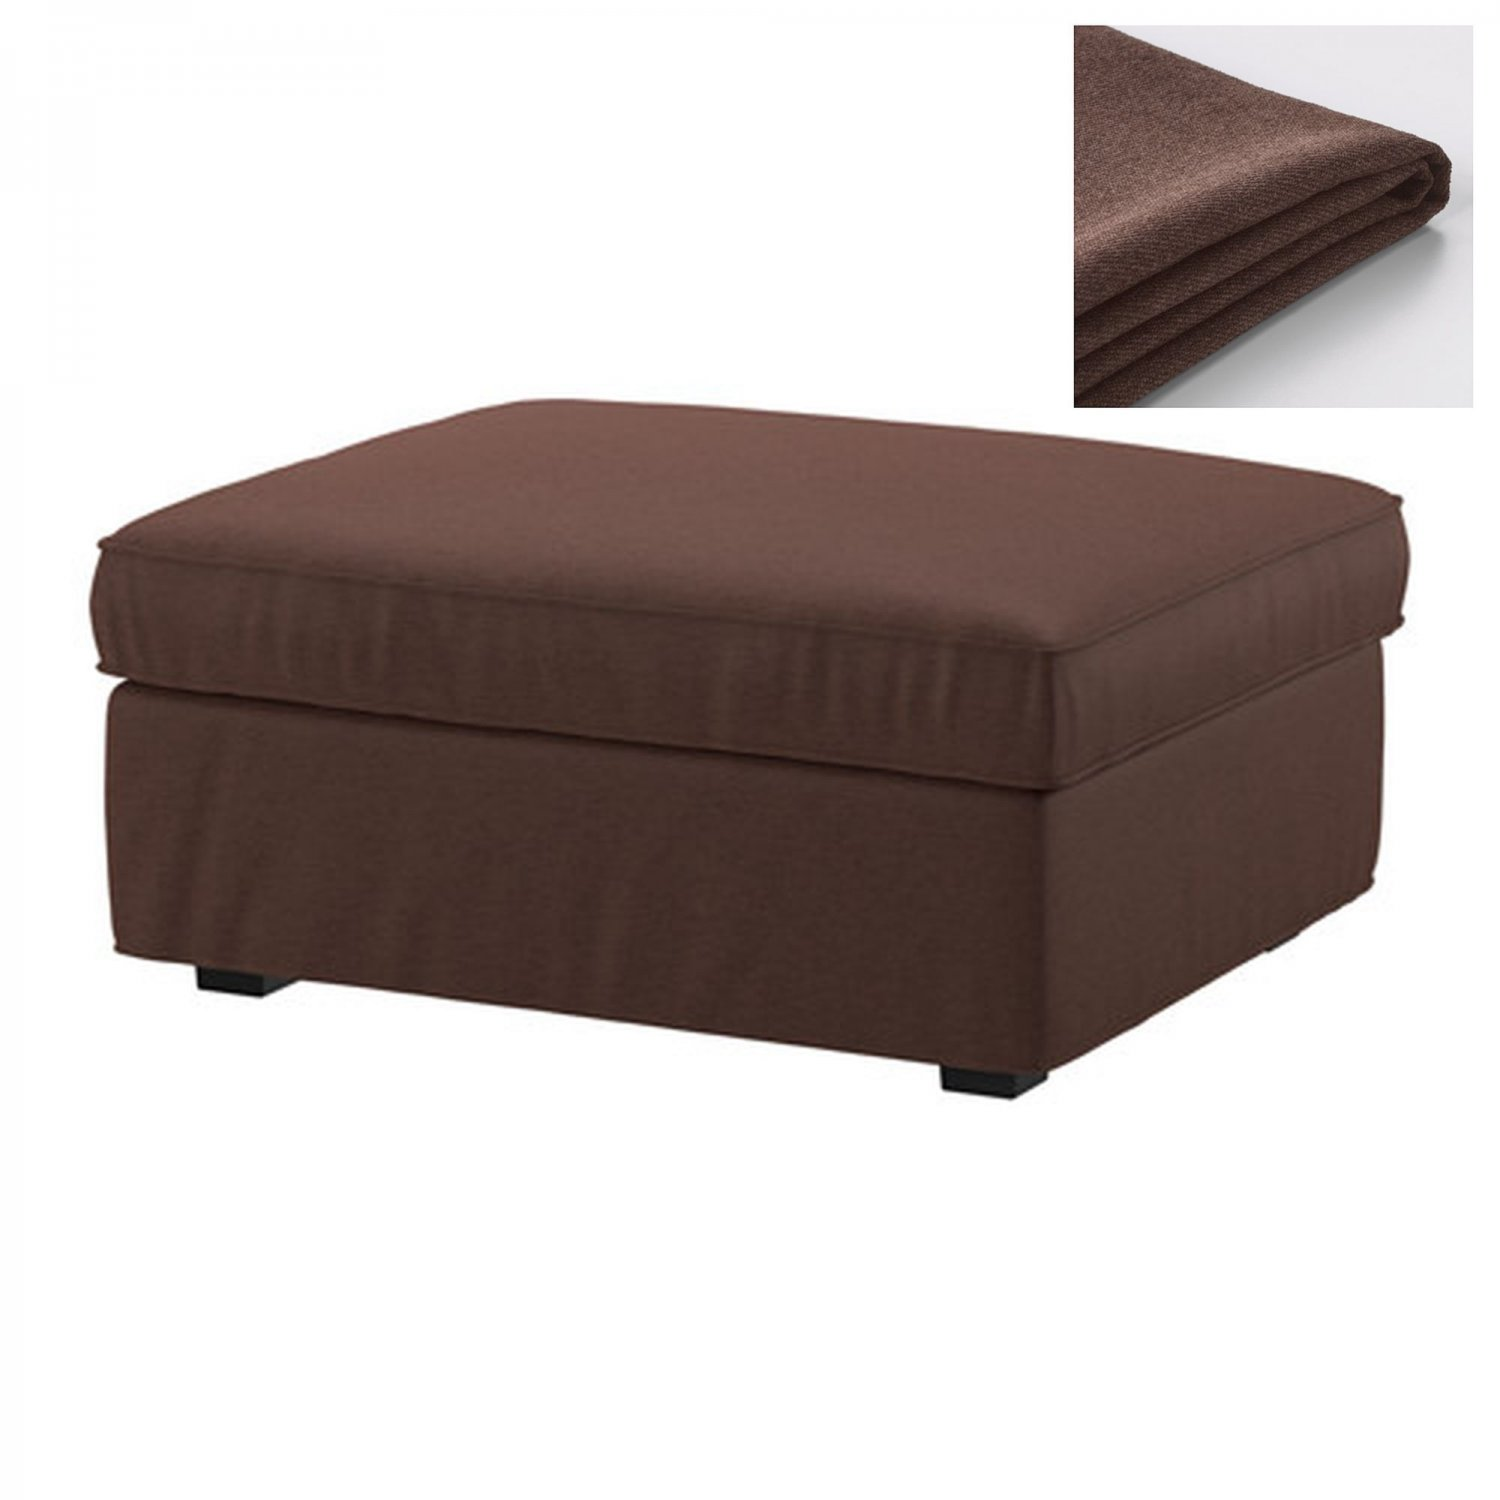 ikea kivik footstool slipcover ottoman cover borred dark brown bezug housse. Black Bedroom Furniture Sets. Home Design Ideas